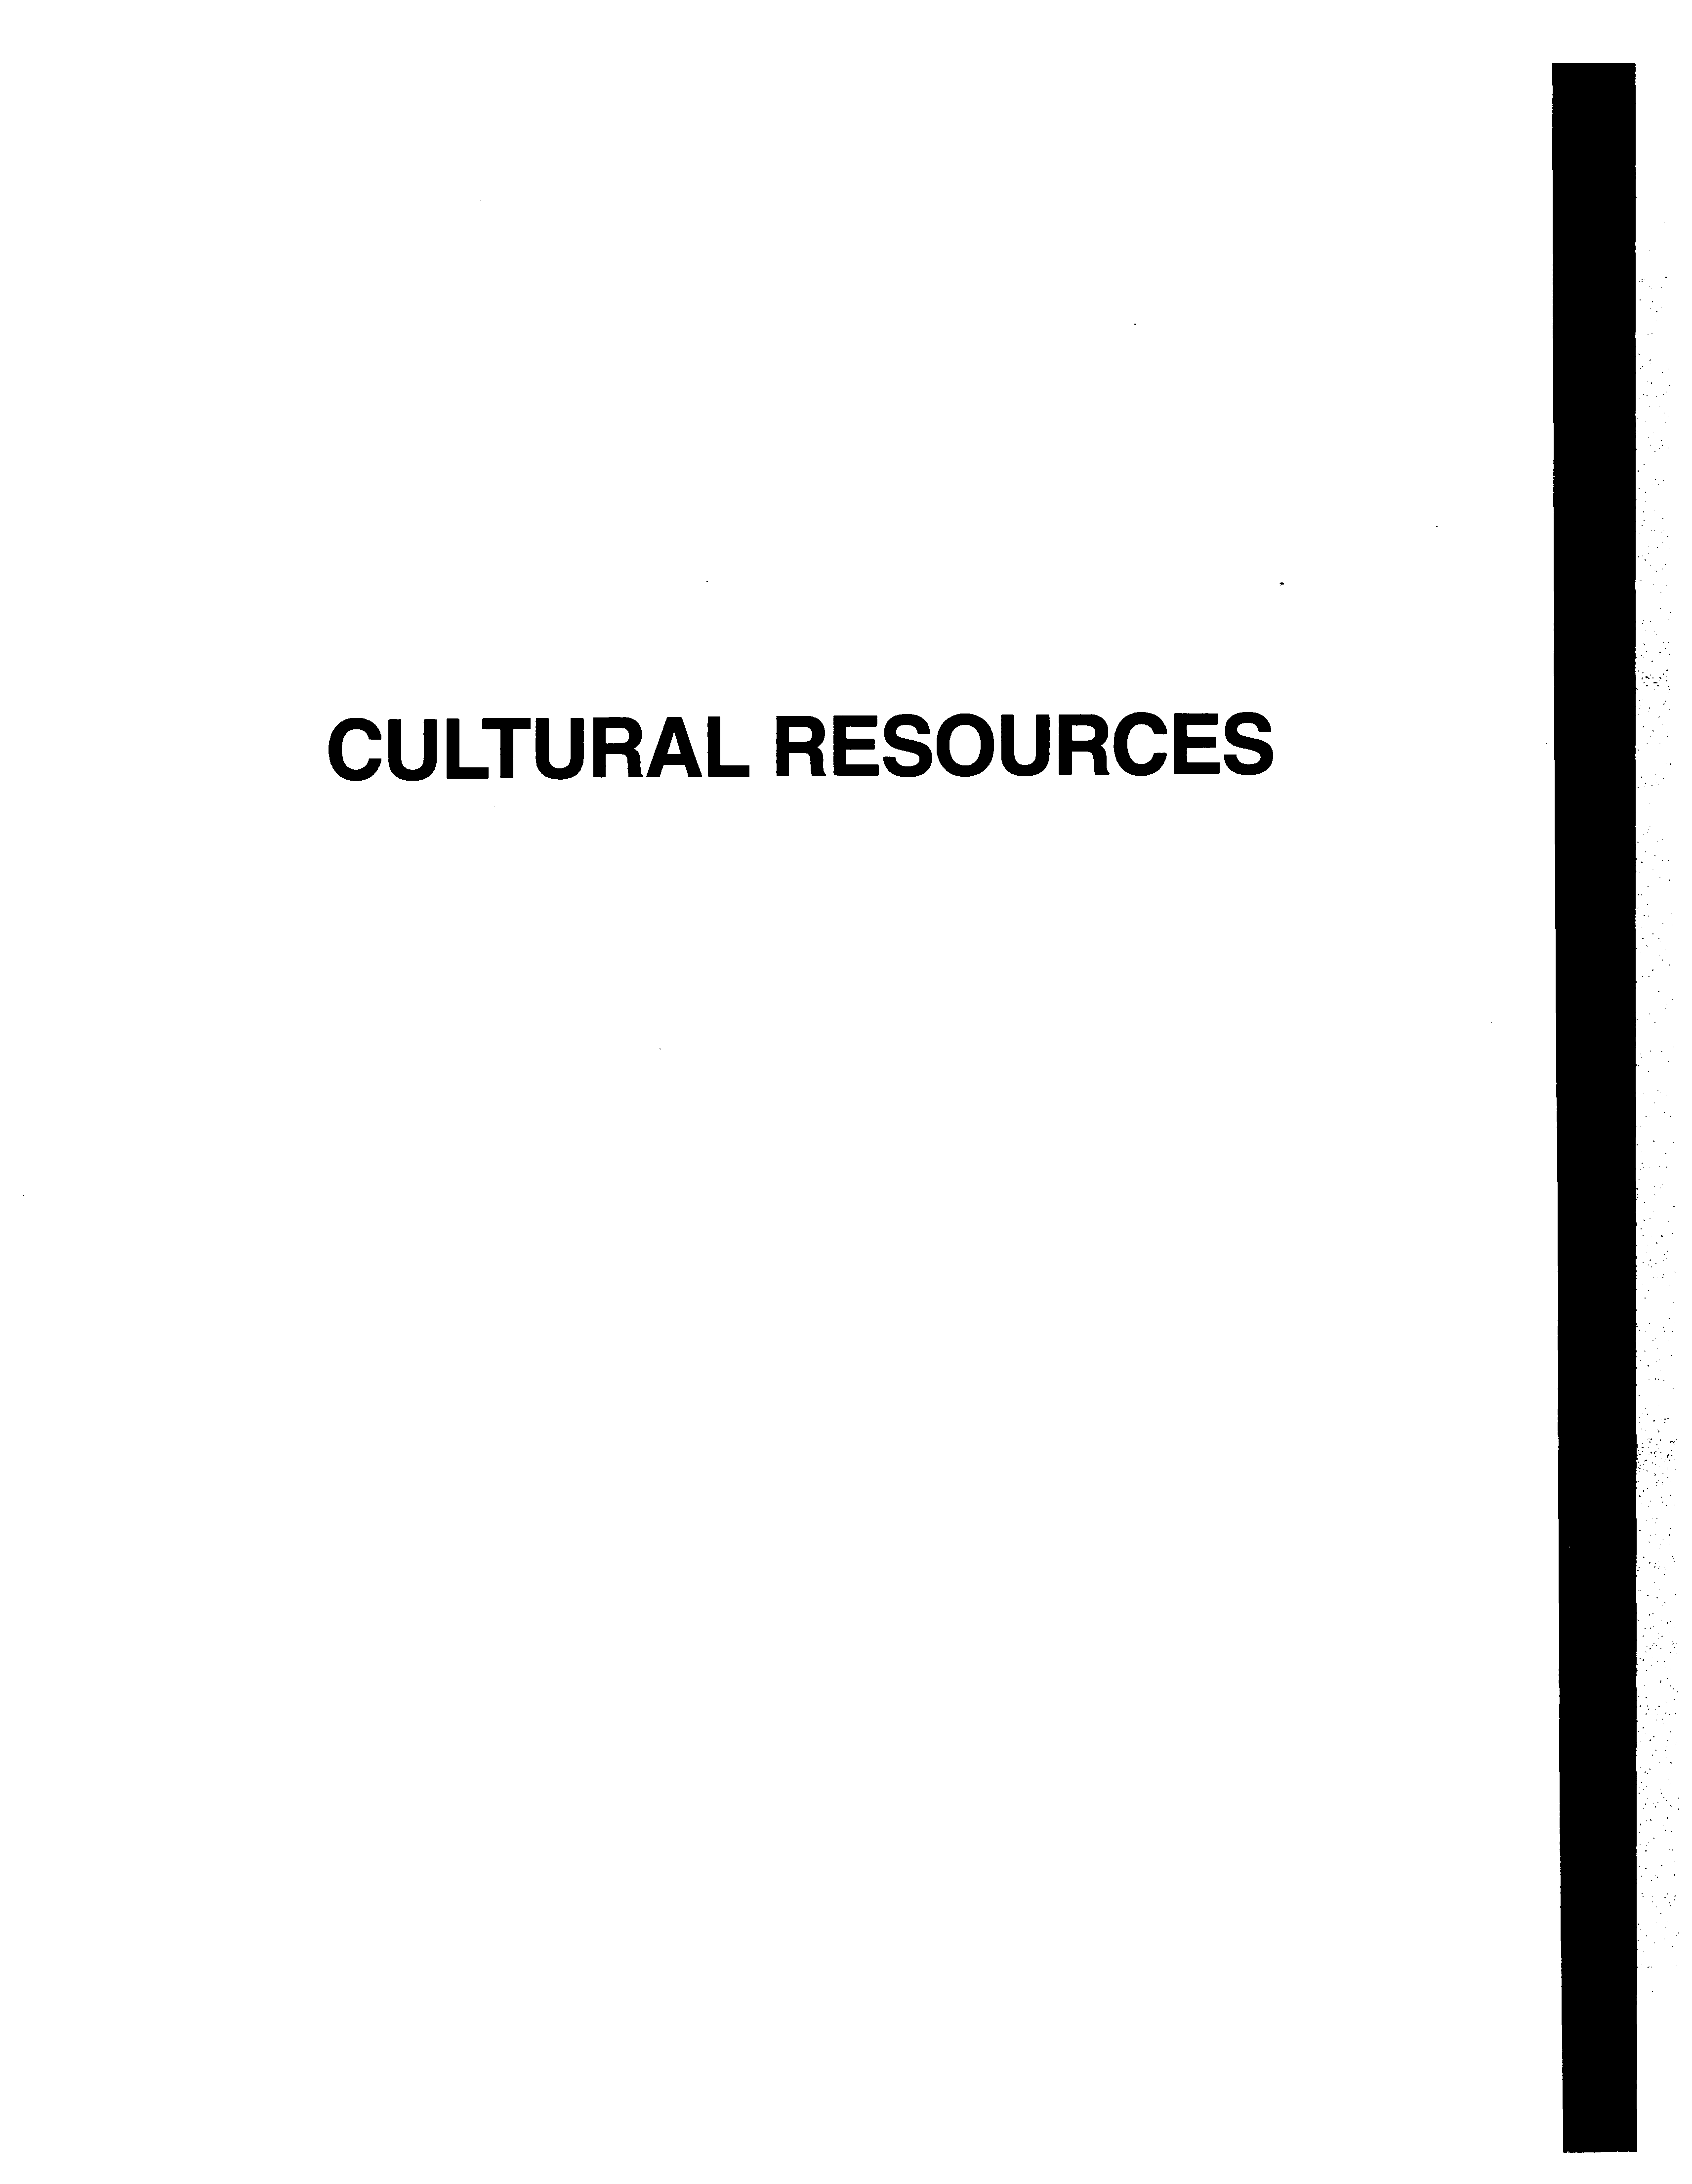 Cross border waters fragile treasures for the 21st century pdf cultural fandeluxe Images